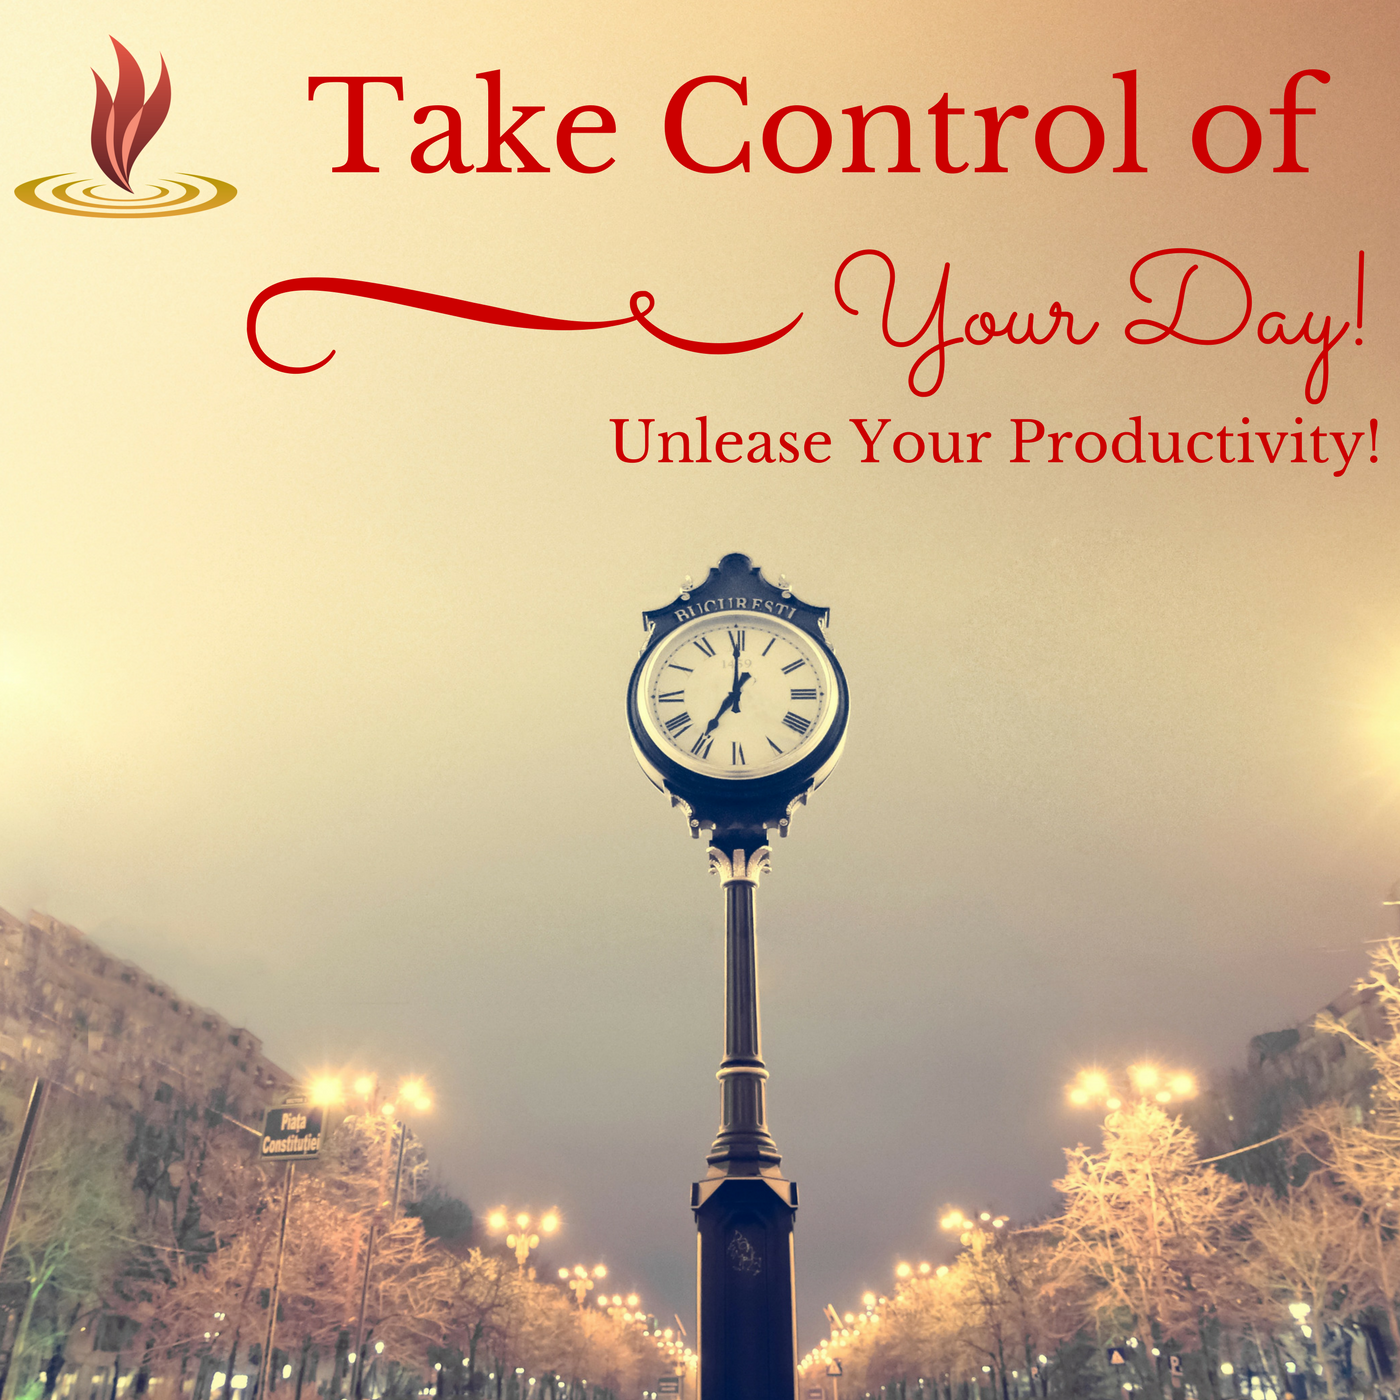 Take Control of Your Day Image